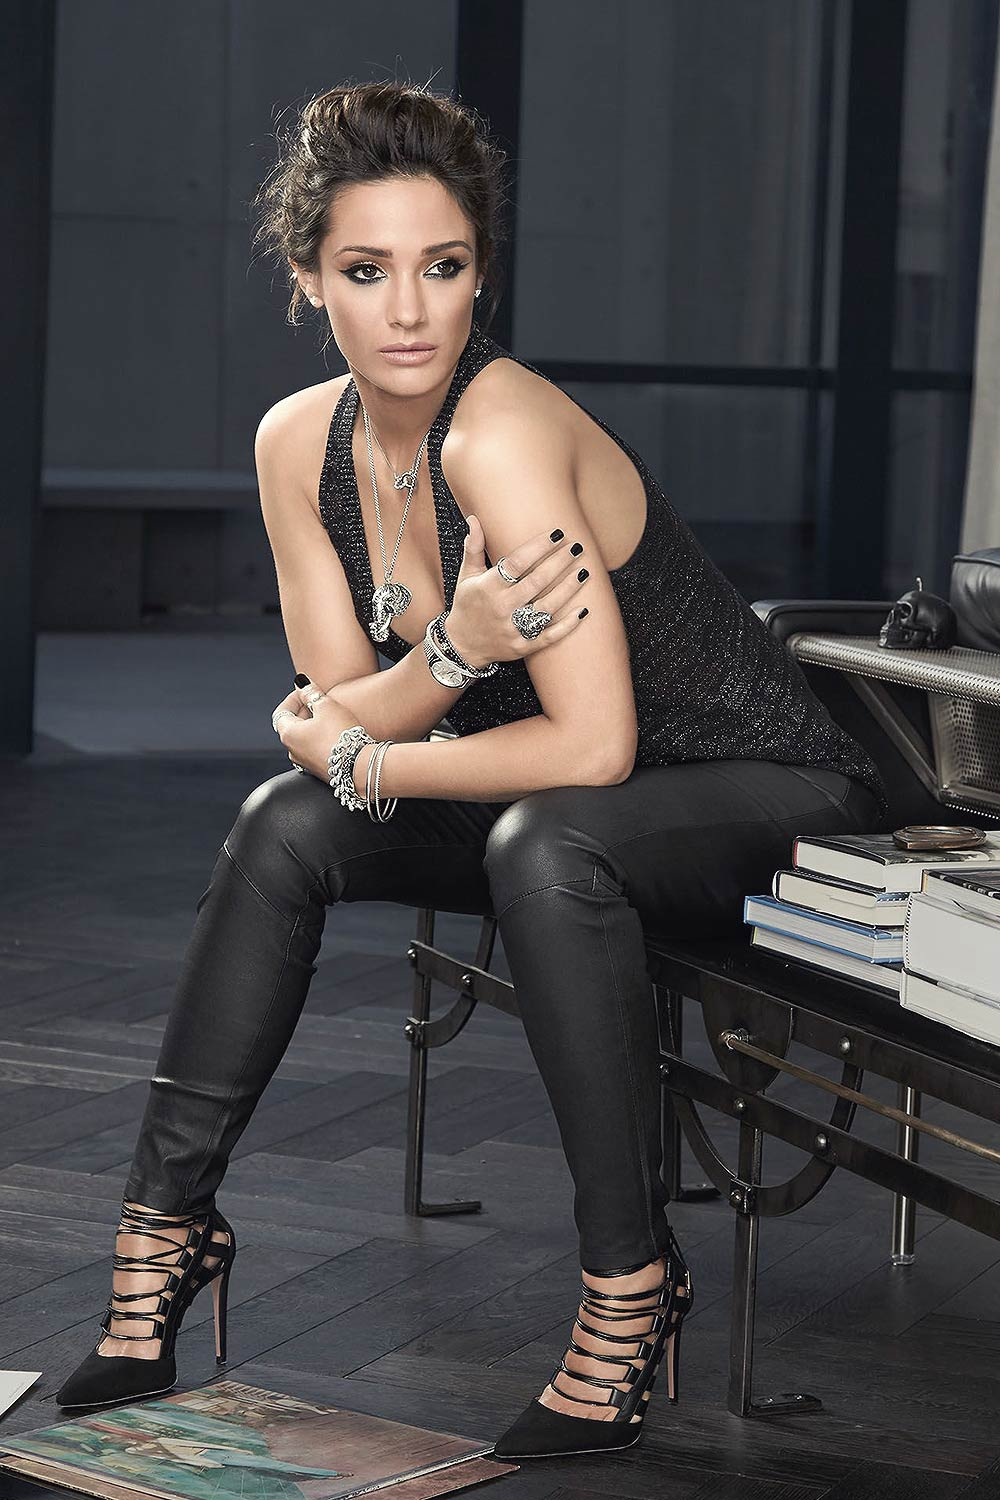 Celebrites Frankie Bridge nude photos 2019